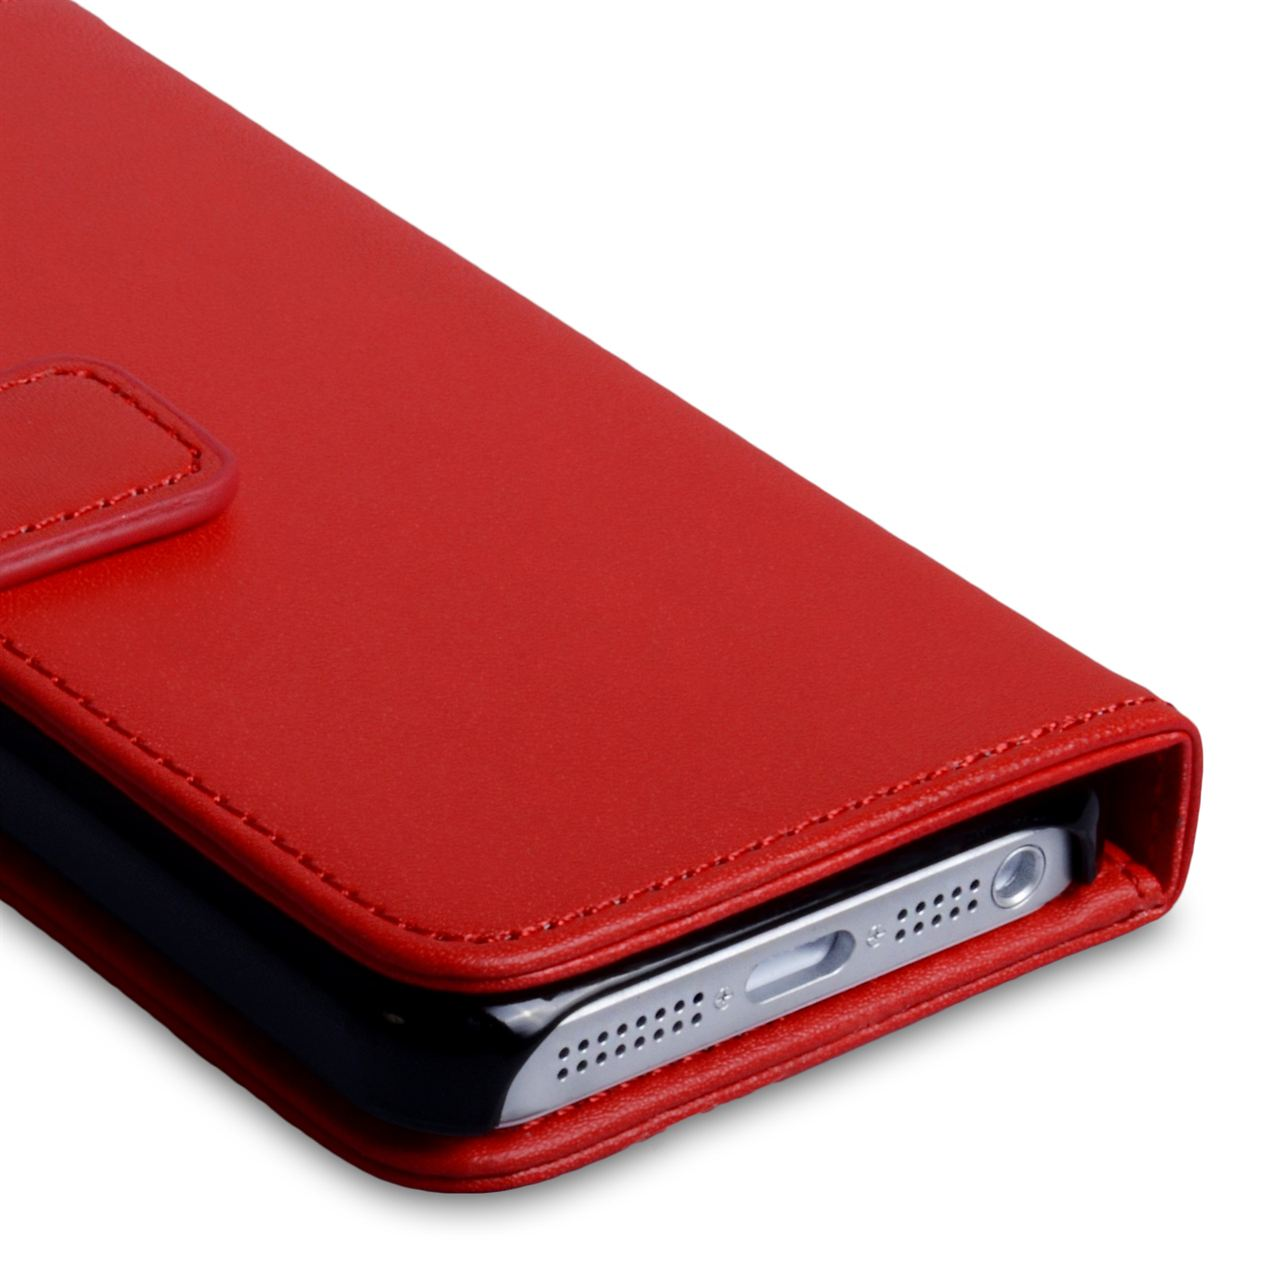 YouSave Accessories iPhone 5C Leather Effect Wallet - Red